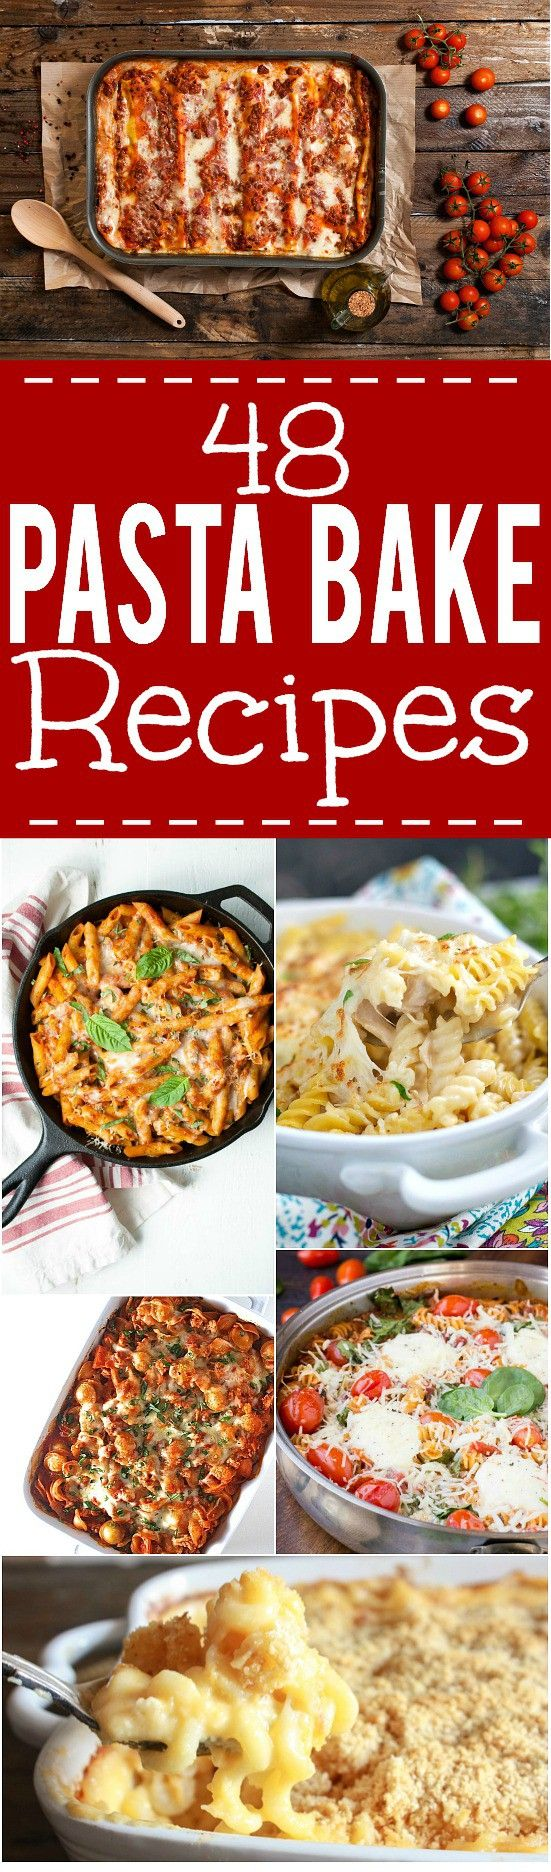 48 Pasta Bake Recipes - Make these simple, cheesy, saucy Pasta Bake Recipes…